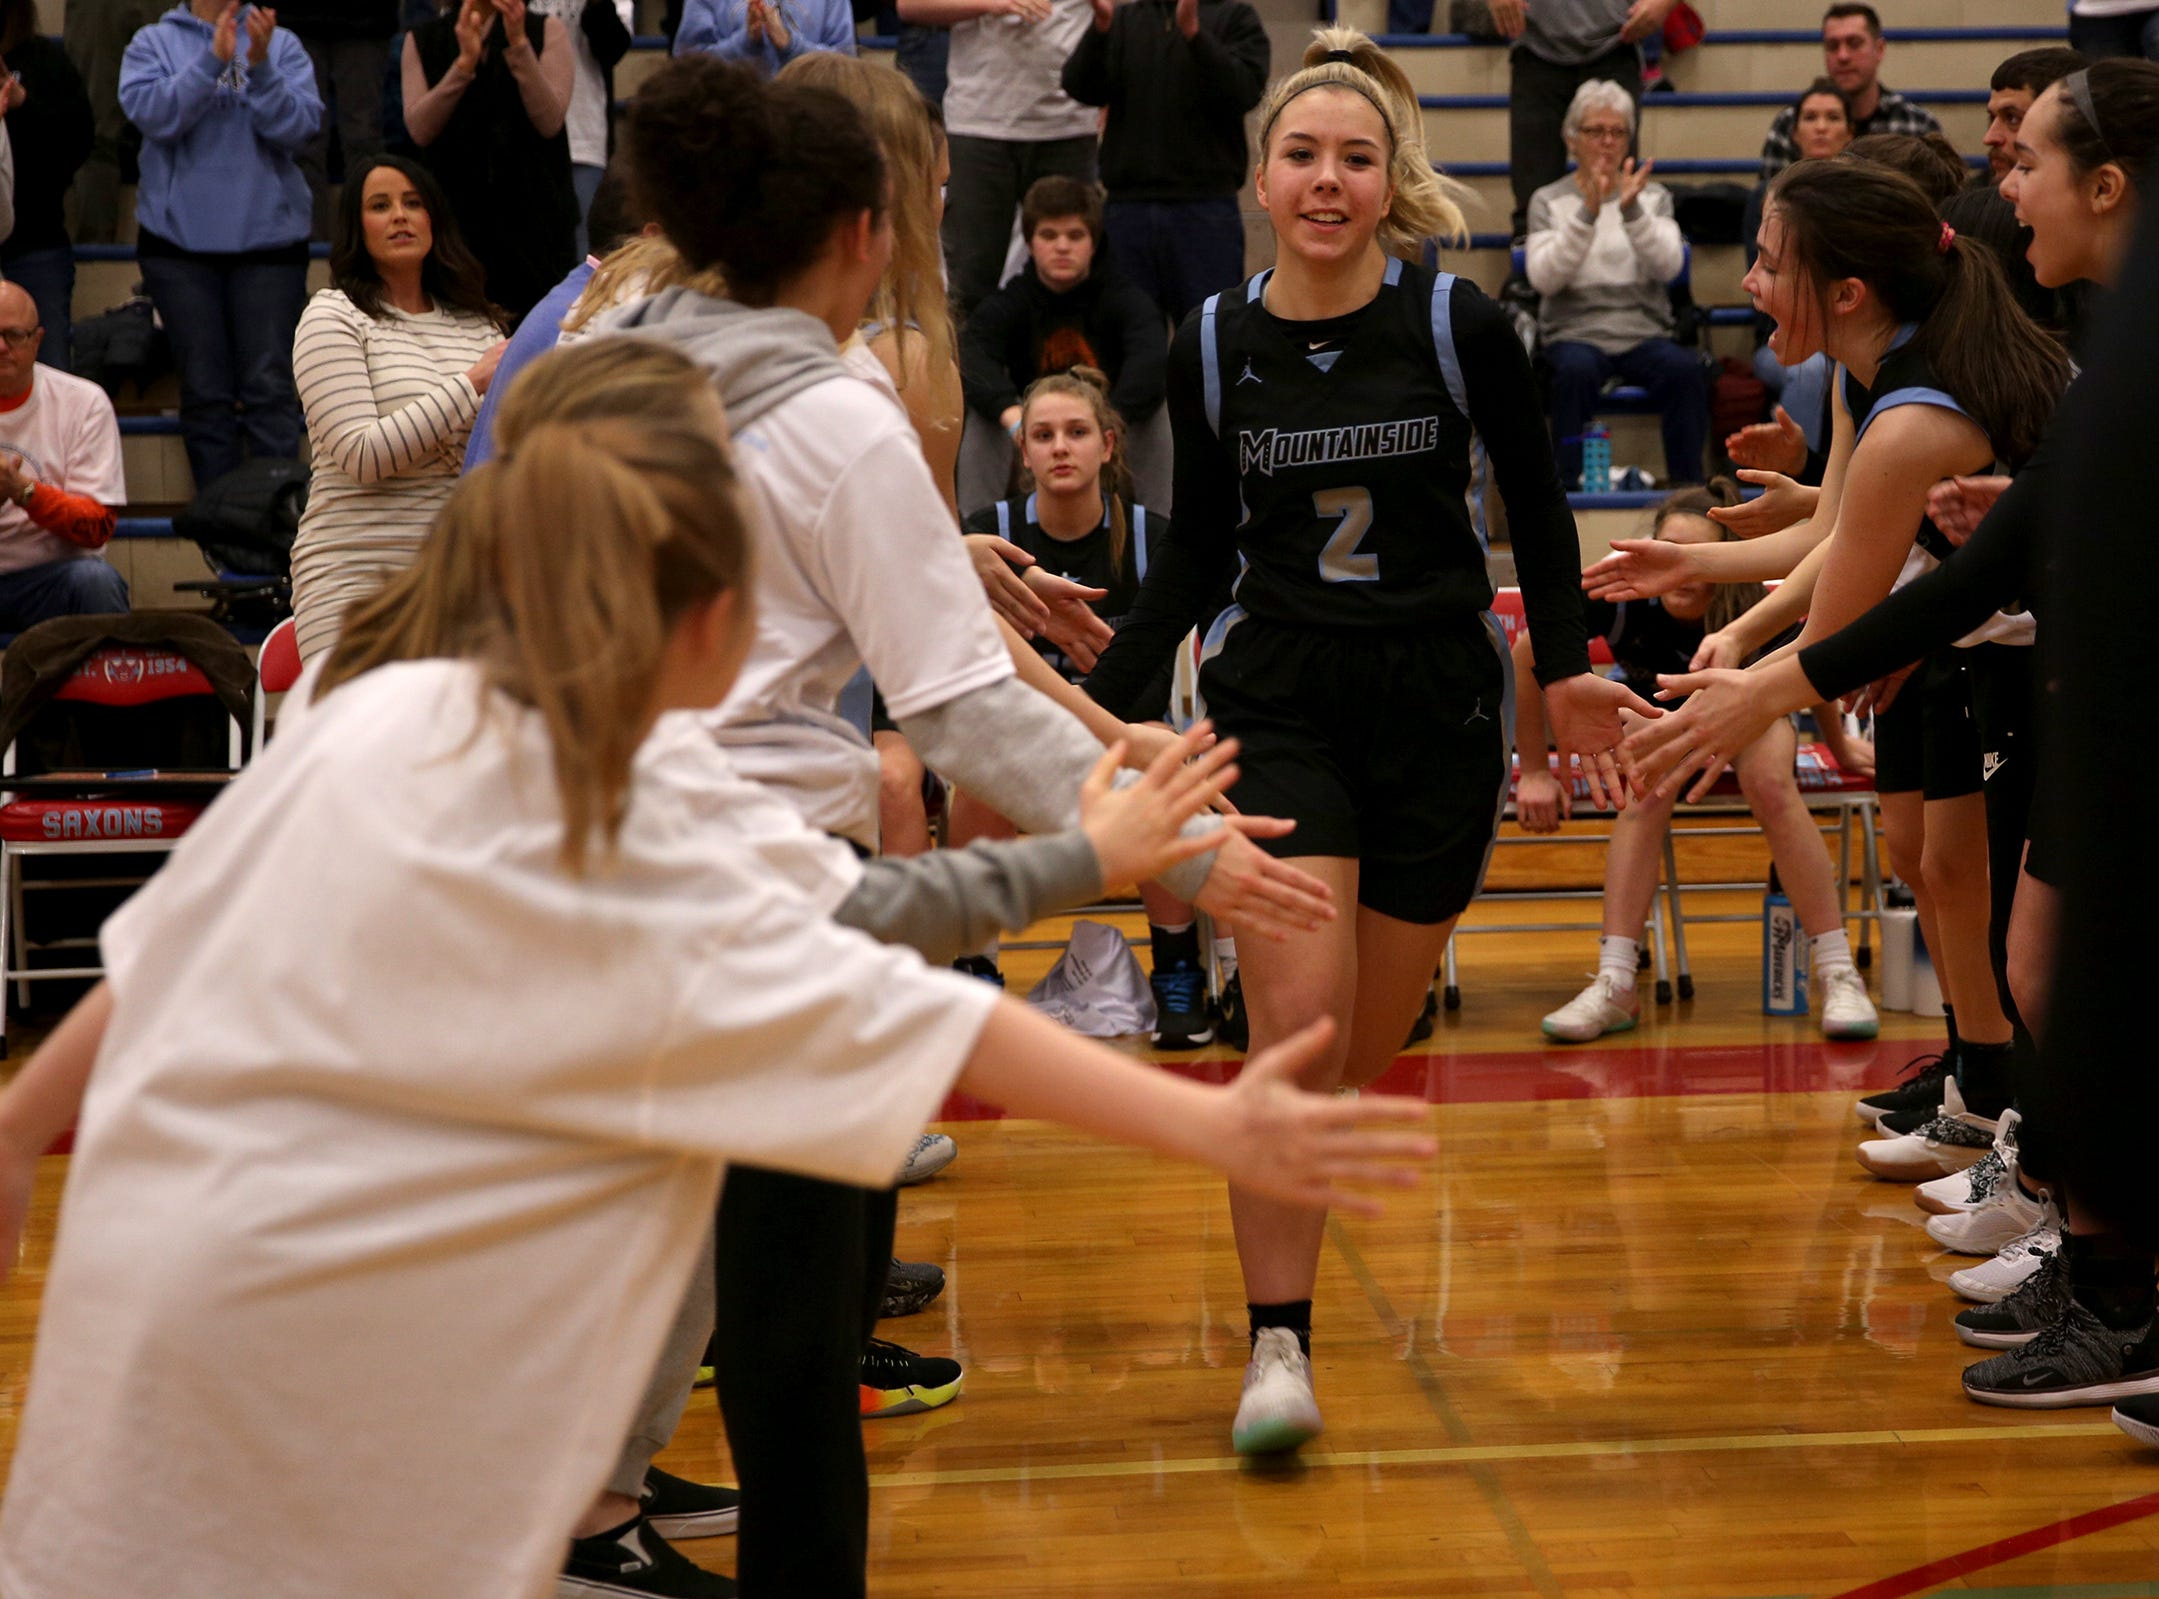 Mountainside's Hailey Lines (2) is introduced in the starting lineup during the South Salem vs. Mountainside girls basketball OSAA playoff game in Salem on Thursday, Feb. 28, 2019.